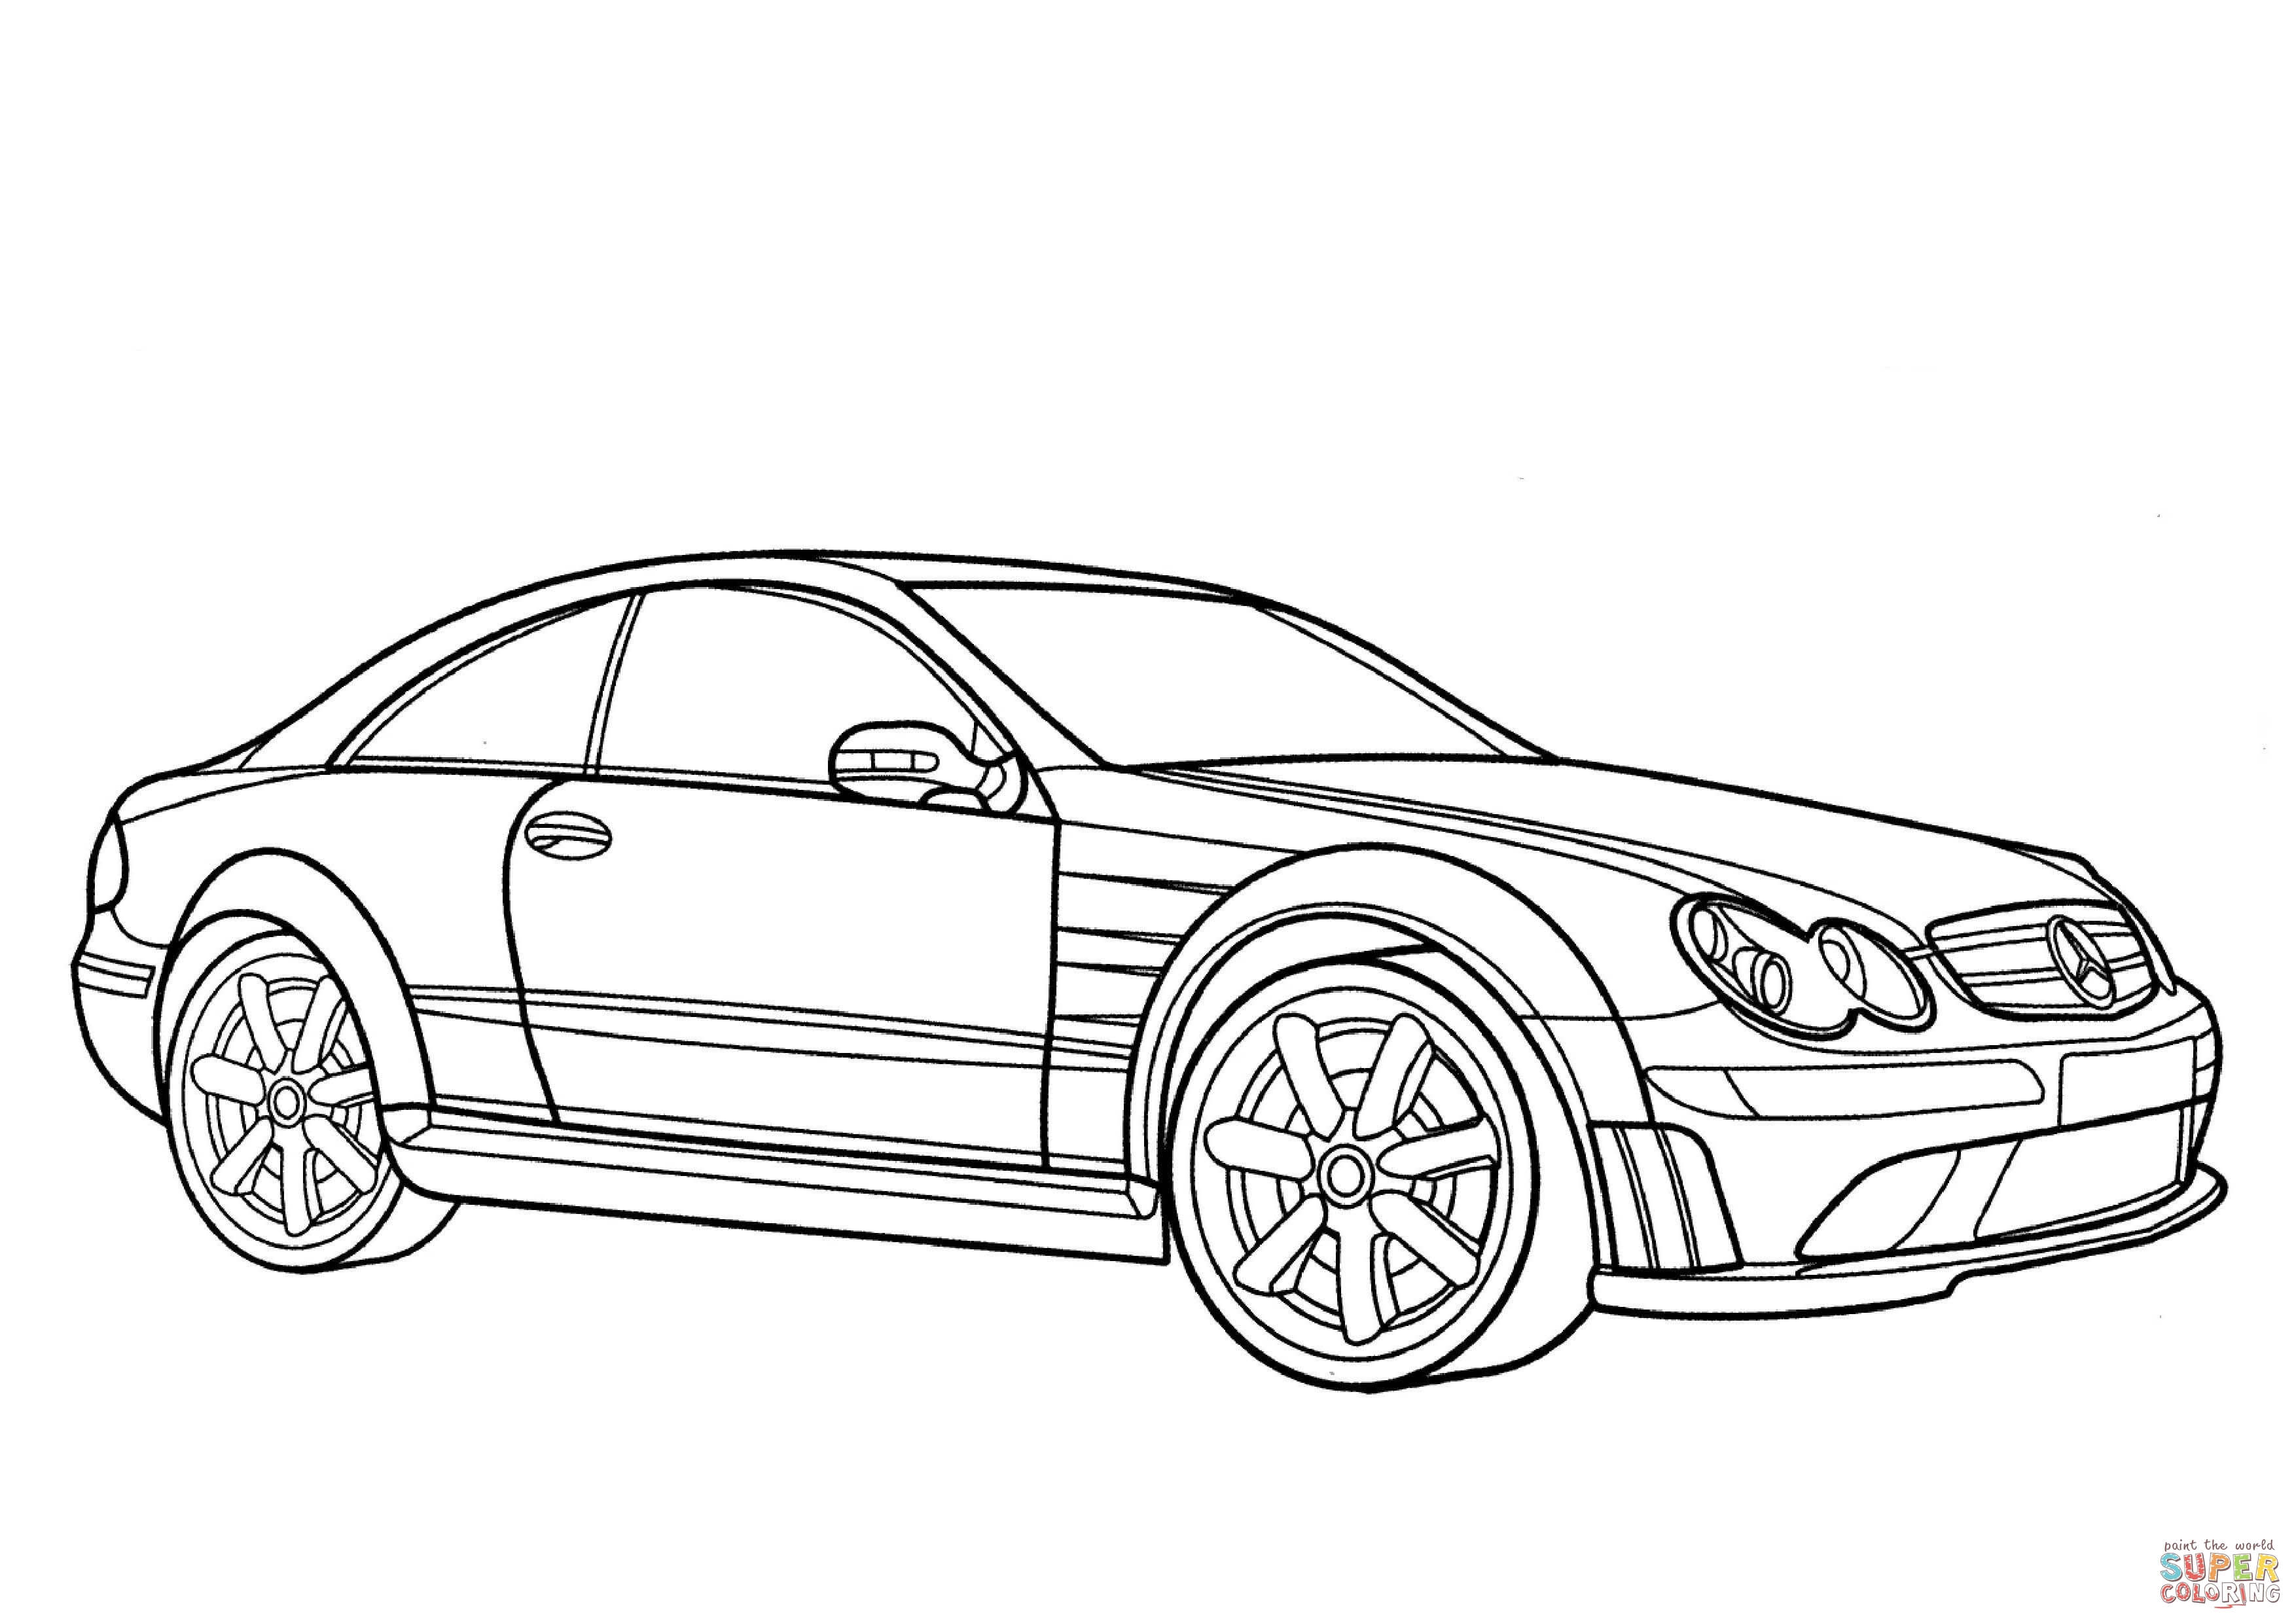 3508x2480 mercedes clk class coloring page free printable coloring pages